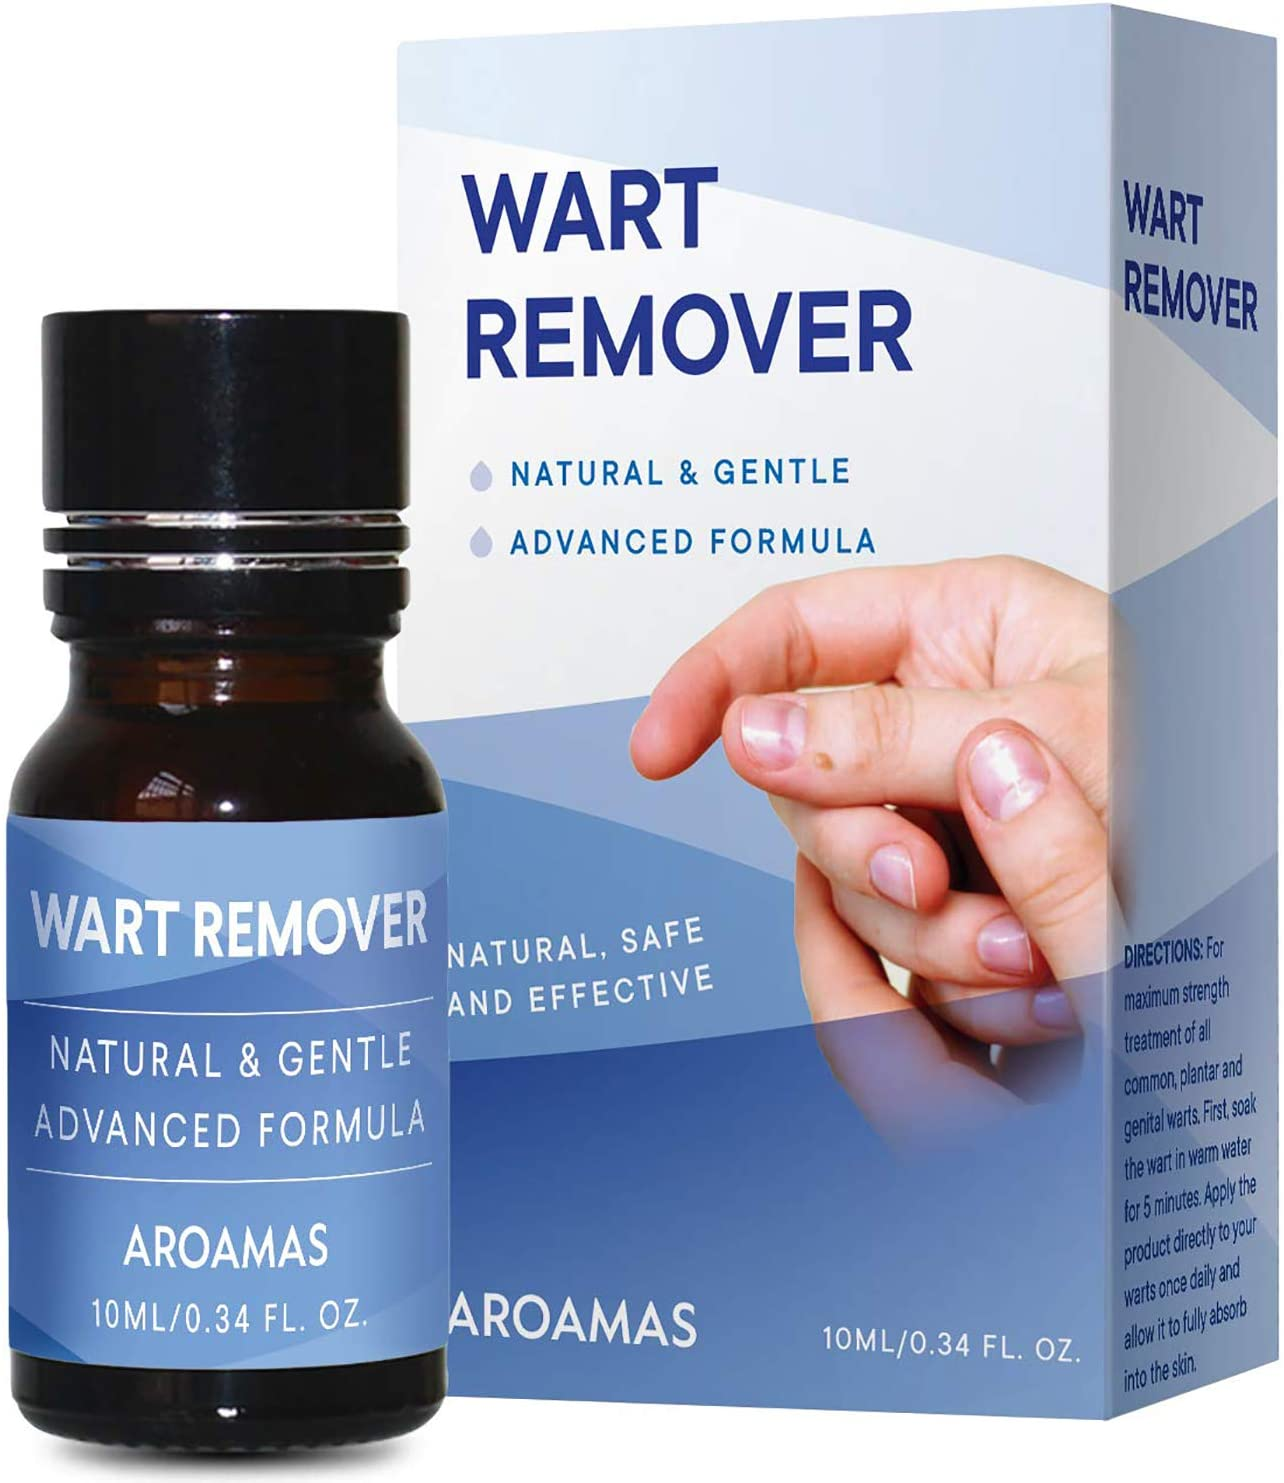 Wart treatment for - Hpv impfung preis